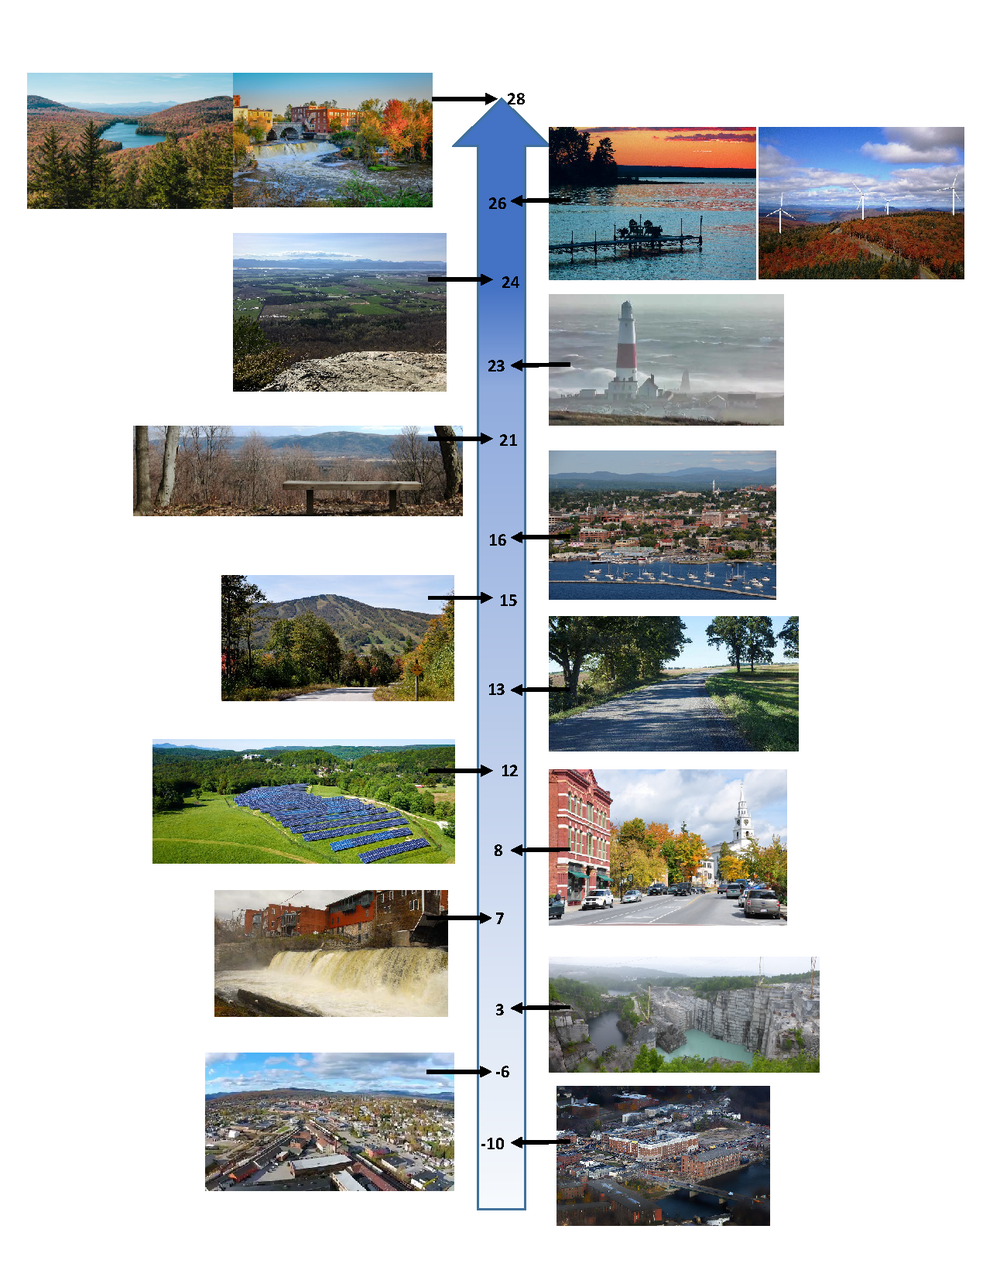 Visual preference survey scores tallied from 14 Middlebury College students. Each person gave a score ranging from 2 (Appealing) to -2 (Unappealing), giving the maximum score of 28 and minimum score of -28 for the photographs.